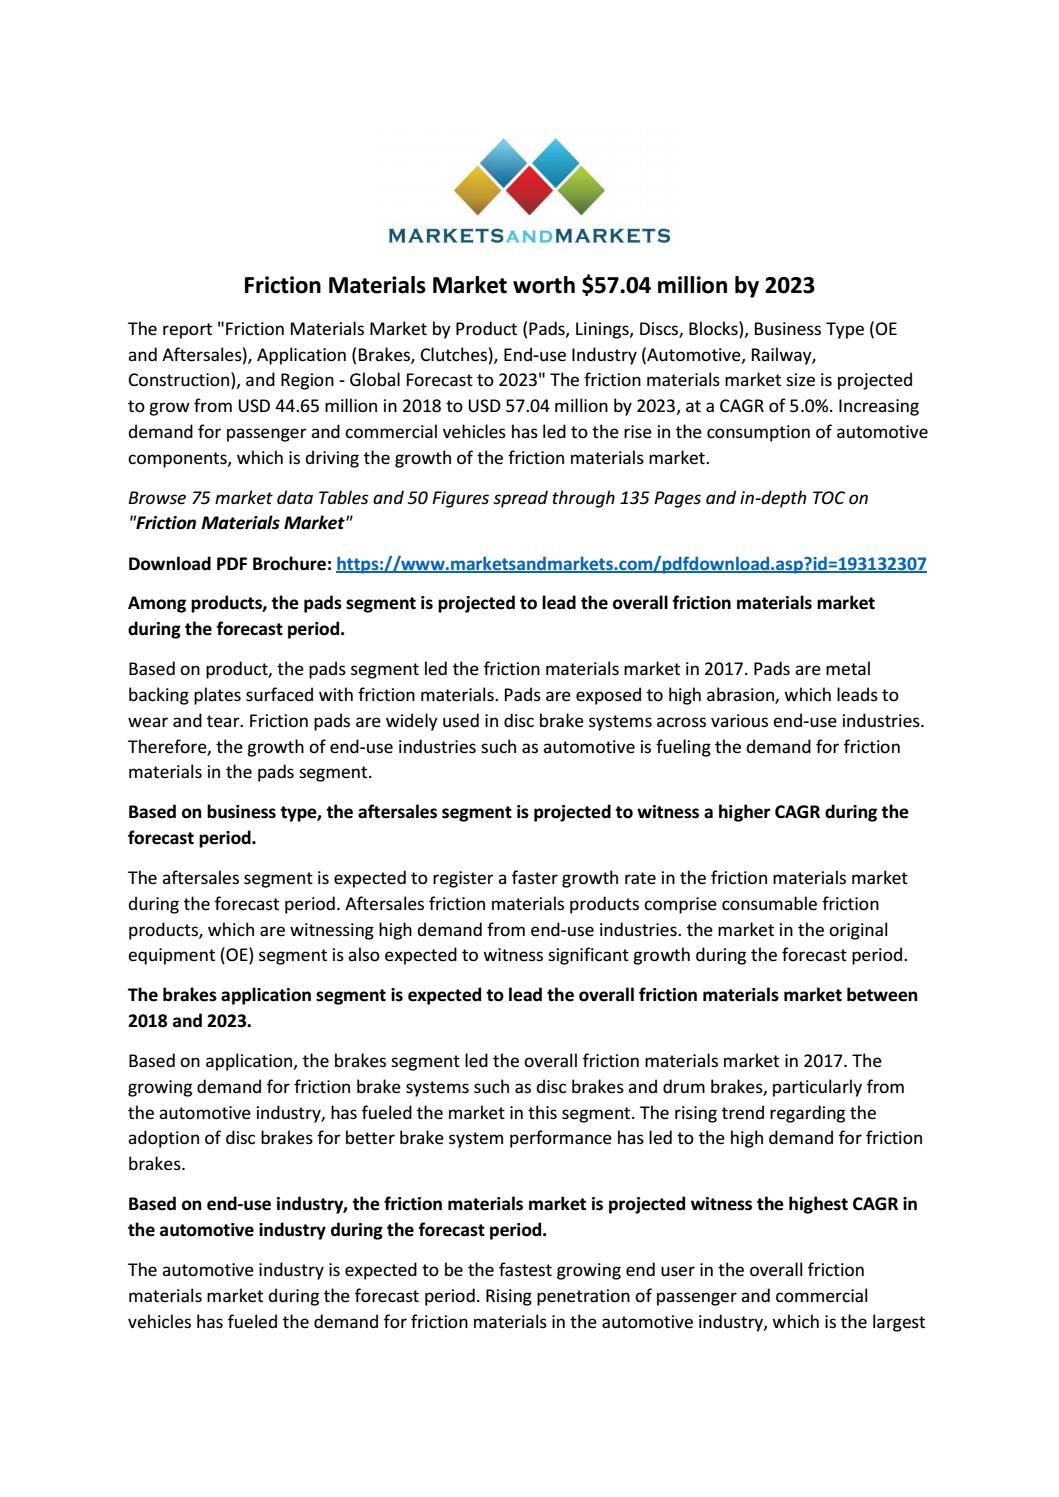 Friction Materials Market worth $57 04 million by 2023 by